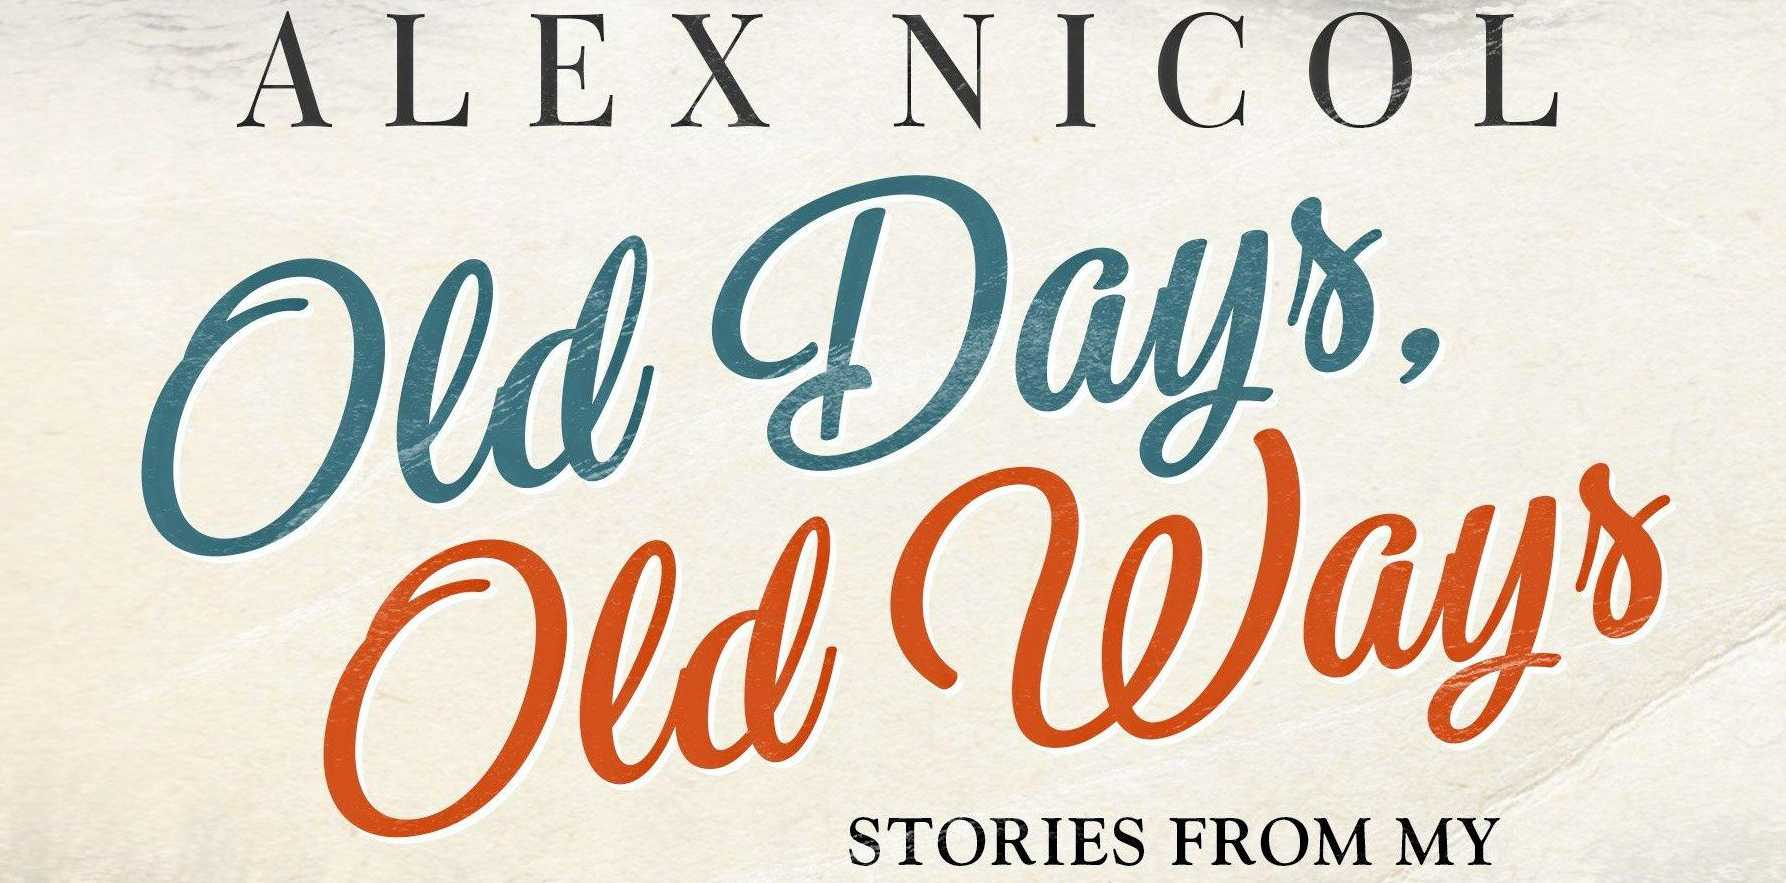 NEW BOOK: Alex Nicol's newly released book, Old Days, Old Ways.